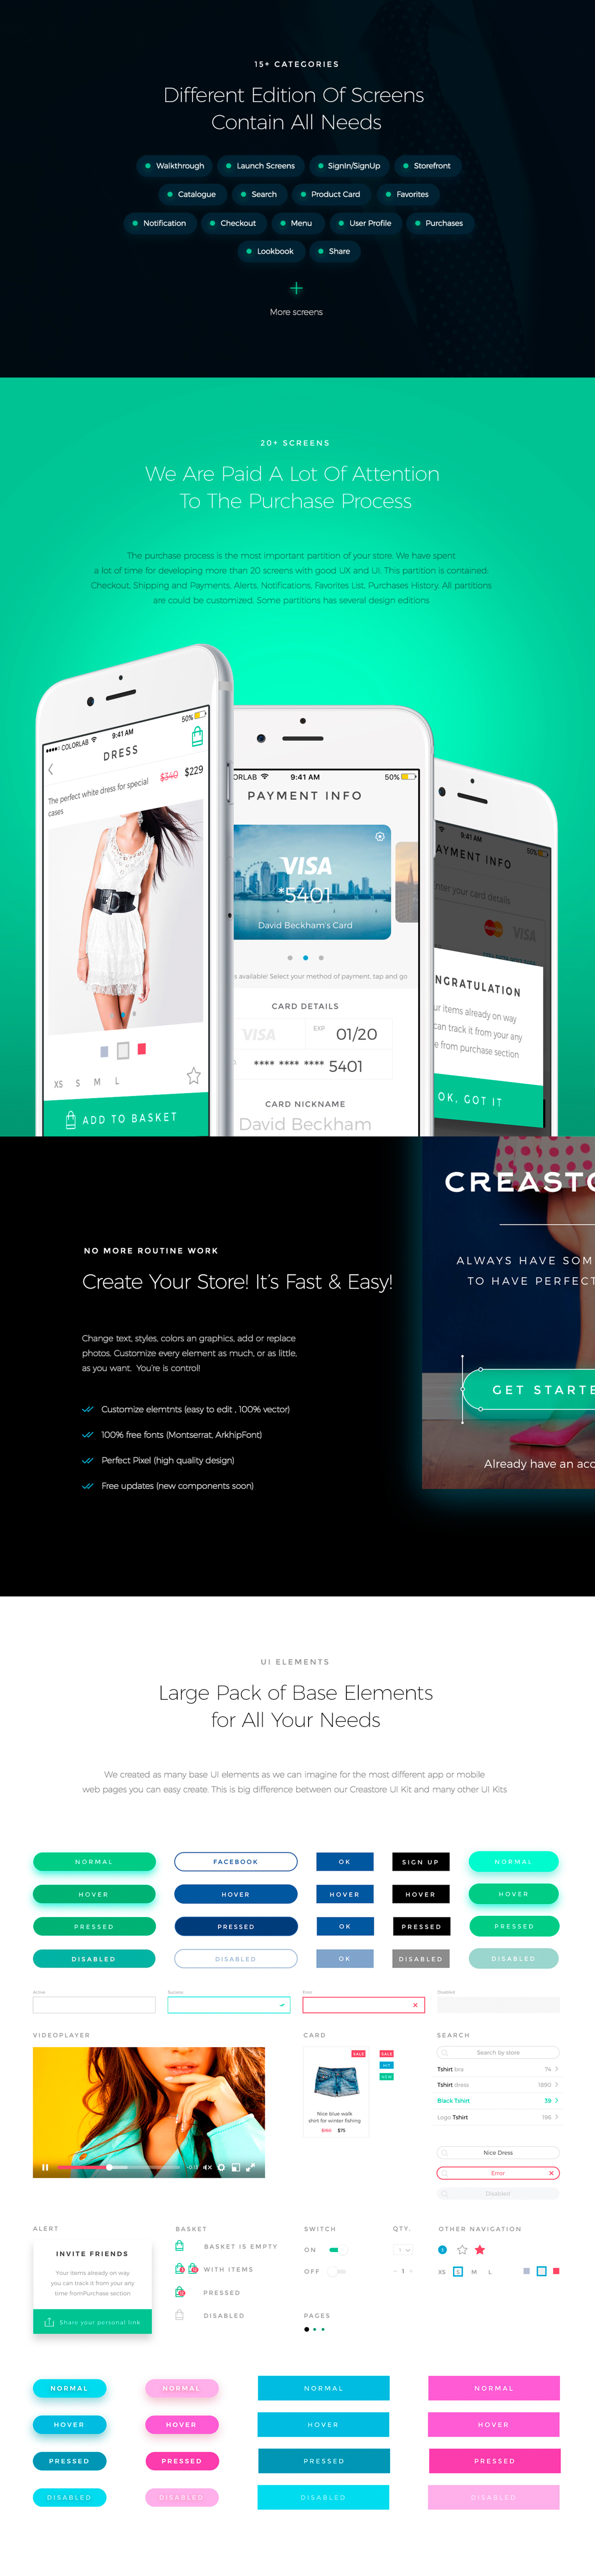 Creastore UI Kit [Sketch]